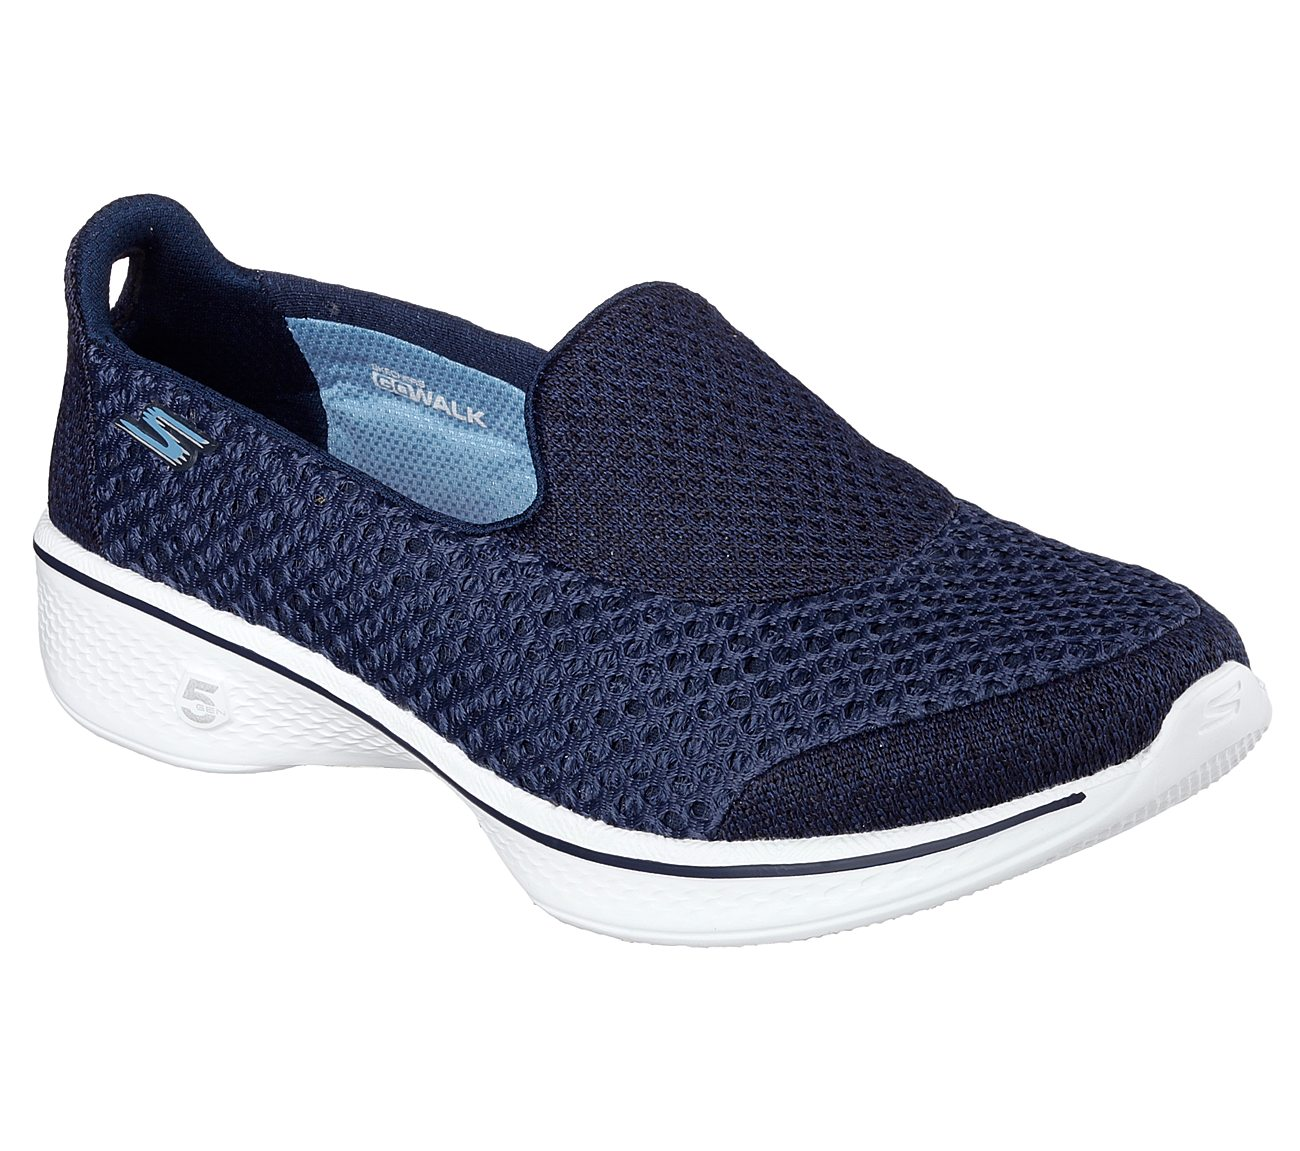 Skechers GOwalk 4 - Kindle